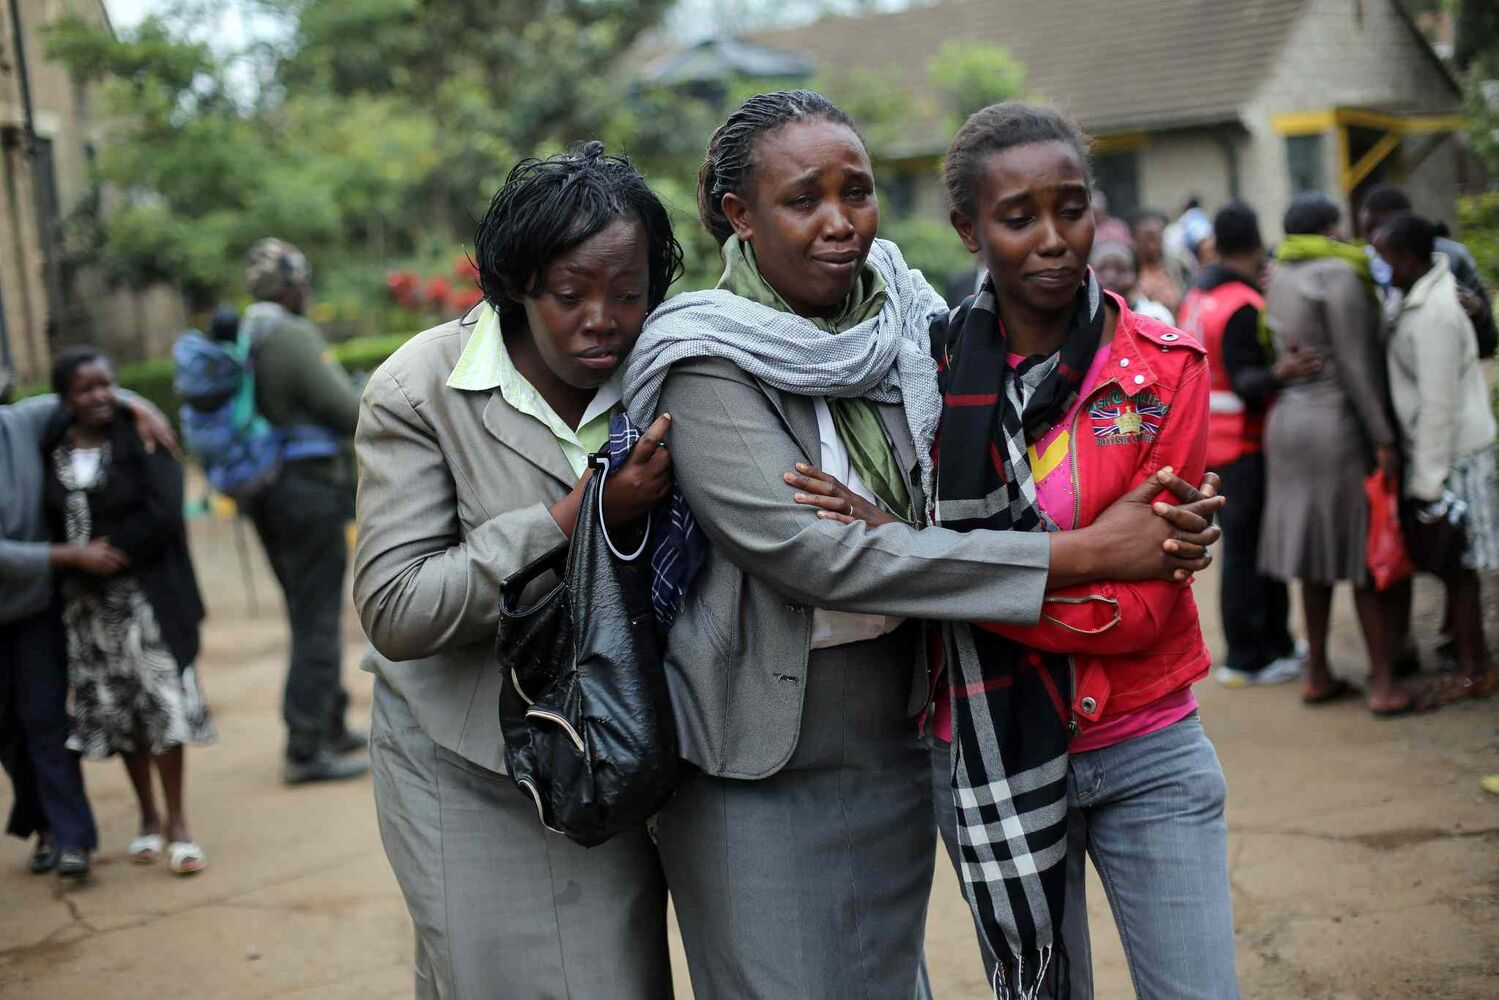 Relatives of Johnny Mutinda Musango, 48, weep after identifying his body at the city morgue in Nairobi, Kenya, Tuesday. Musango was one of the victims of the Westgate Mall hostage siege. Kenyan security forces were still combing the Mall on the fourth day of the siege by al-Qaida-linked terrorists.  (Jerome Daly / The Associated Press)